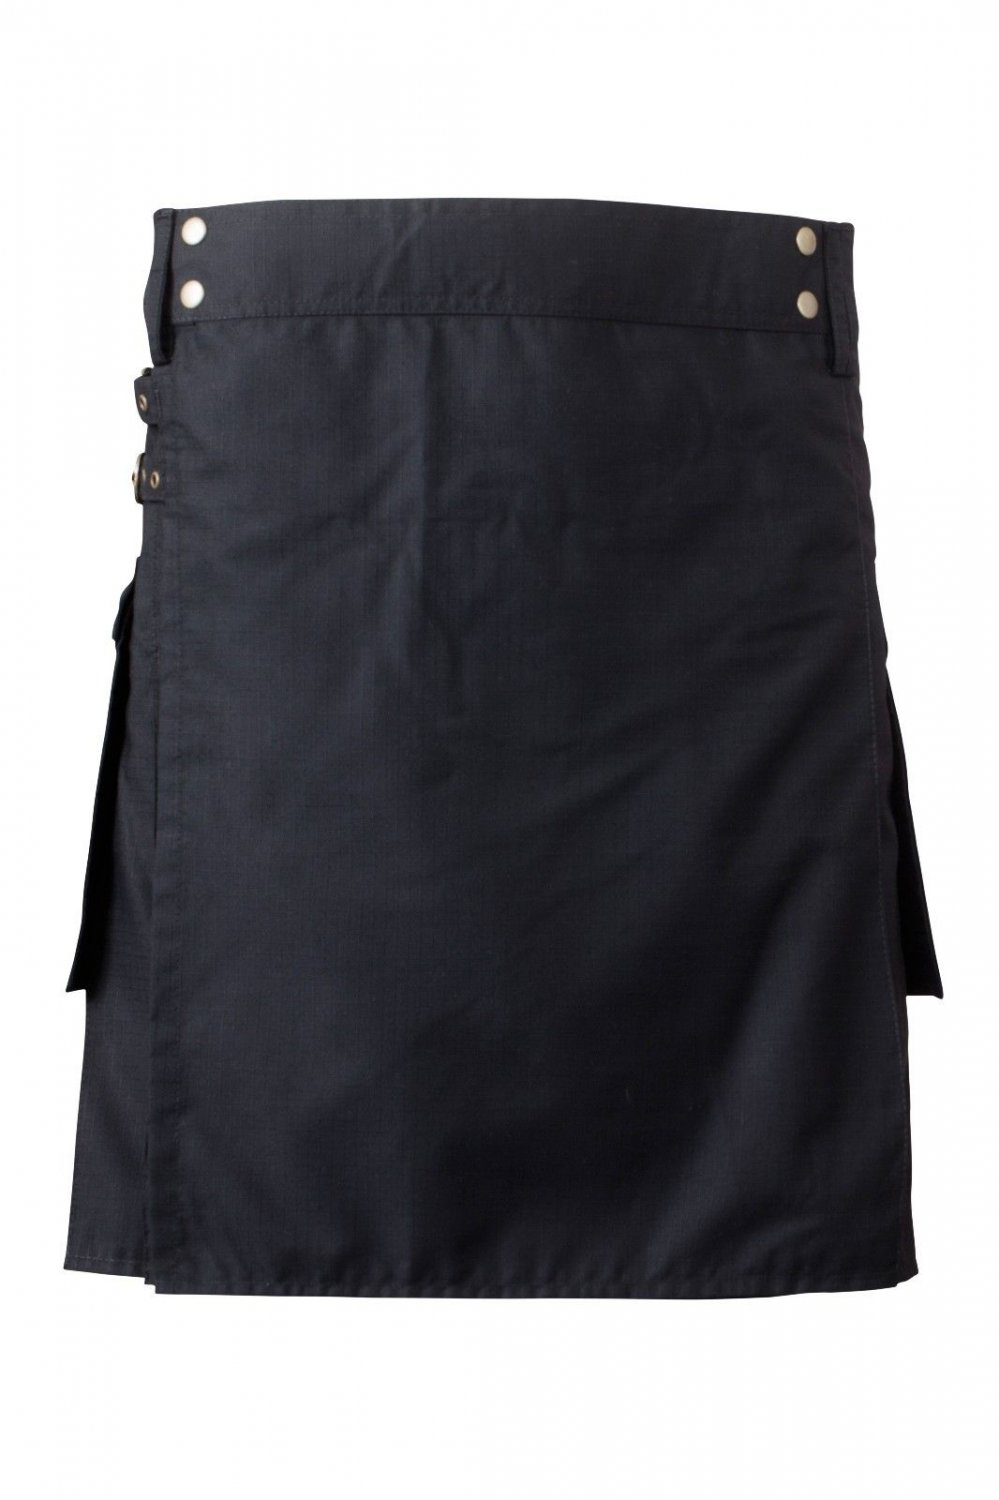 50 Waist Men's Scottish Low Price Brand New Black Cotton Utility Kilt, Fine Quality 100% Cotton